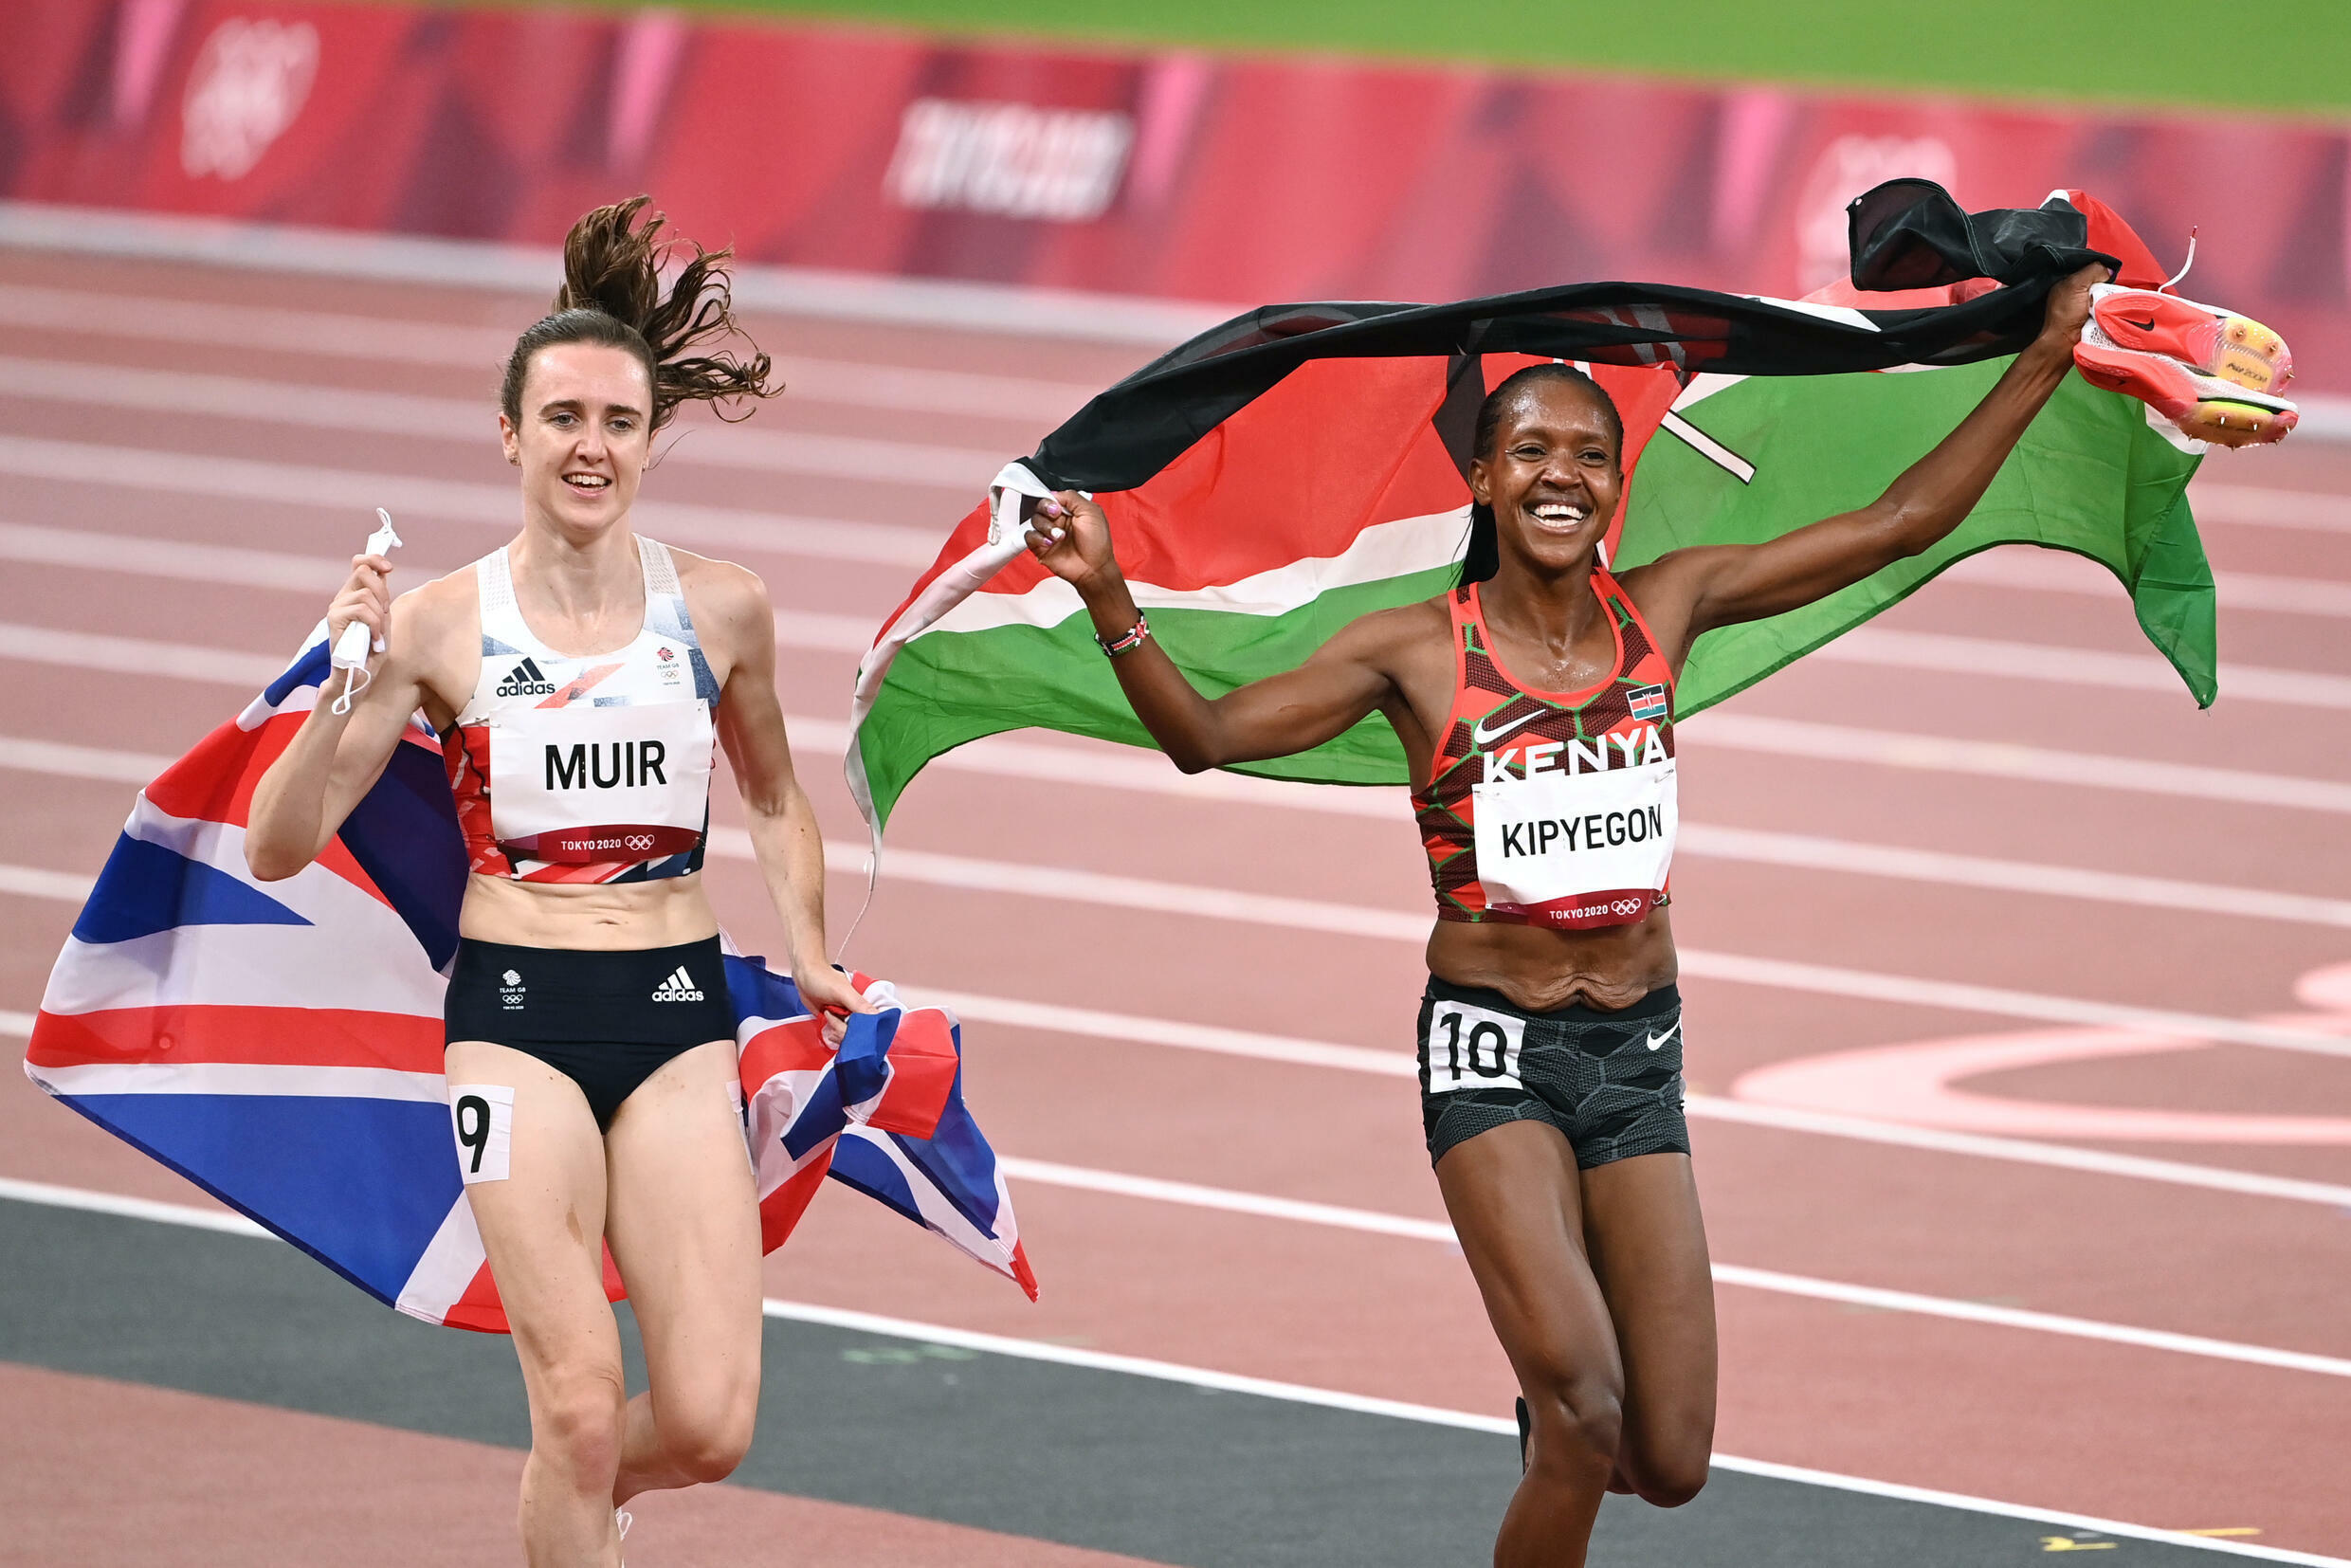 Kenya's Faith Kipyegon retained her Olympic women's 1500 metres title and Laura Muir won silver for Britain